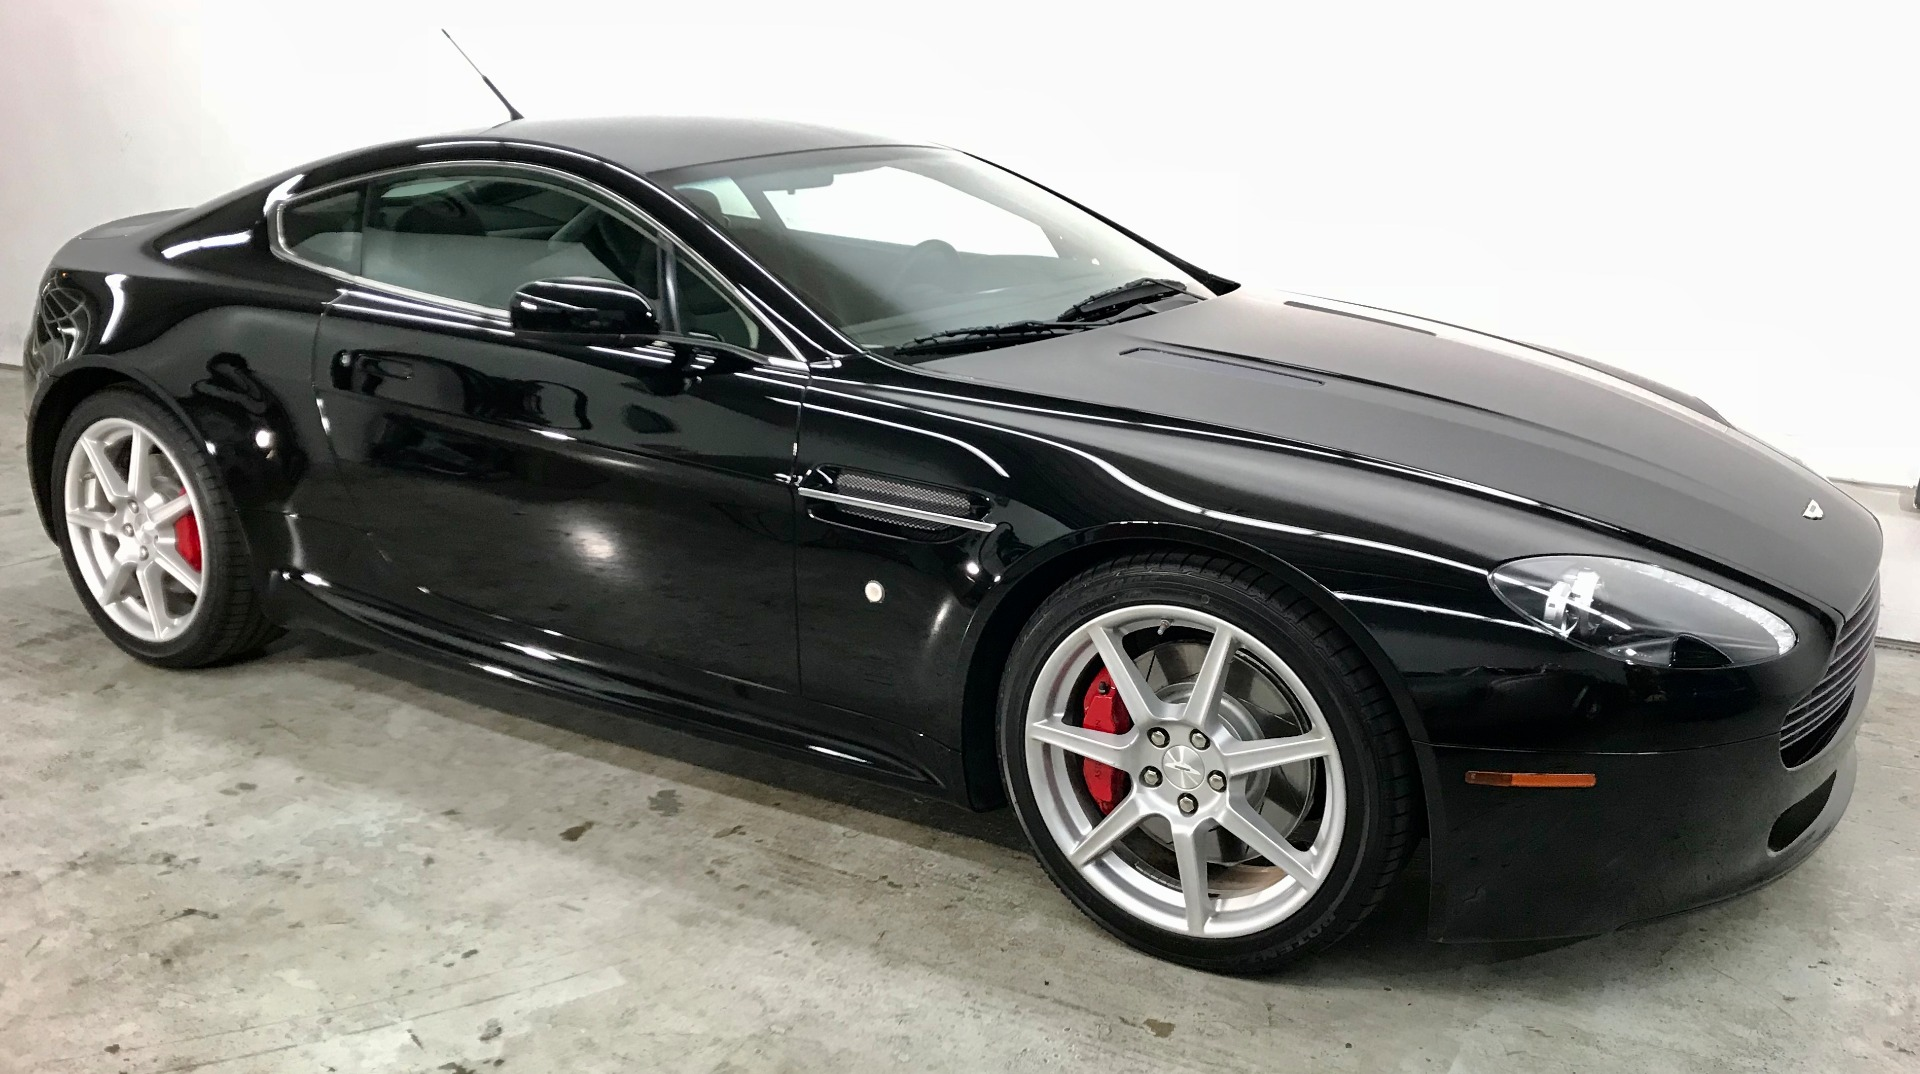 Aston Martin V Vantage Stock For Sale Near Mountain View - 2006 aston martin